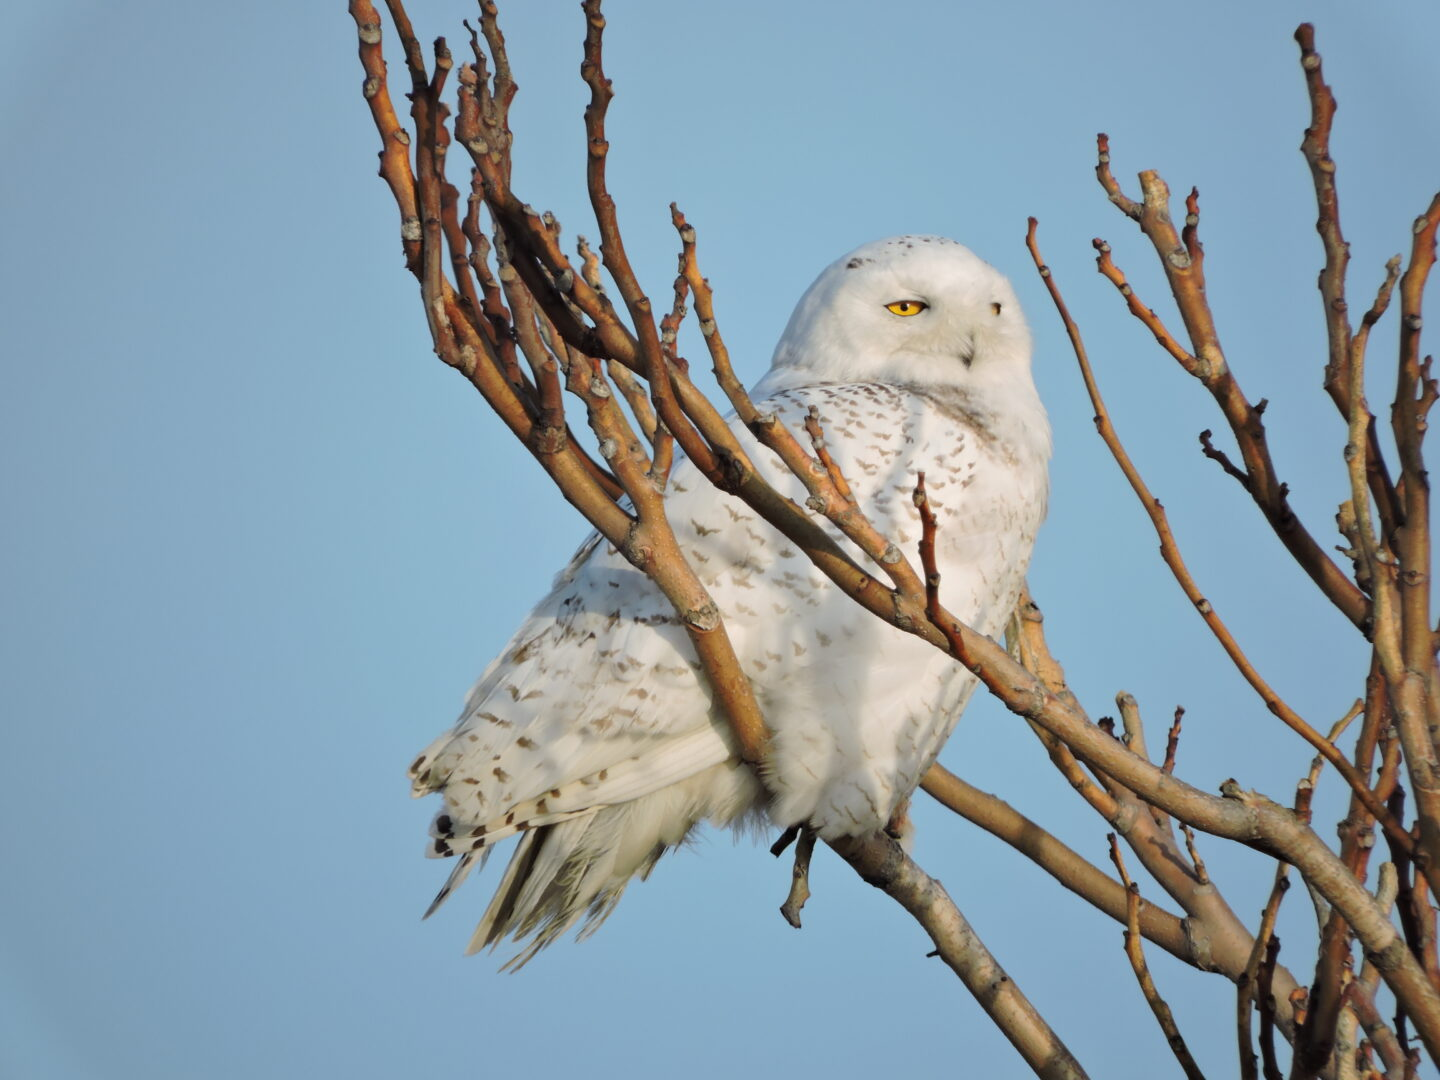 Oh hey!! Snowy Owl! Fancy seeing you here!!